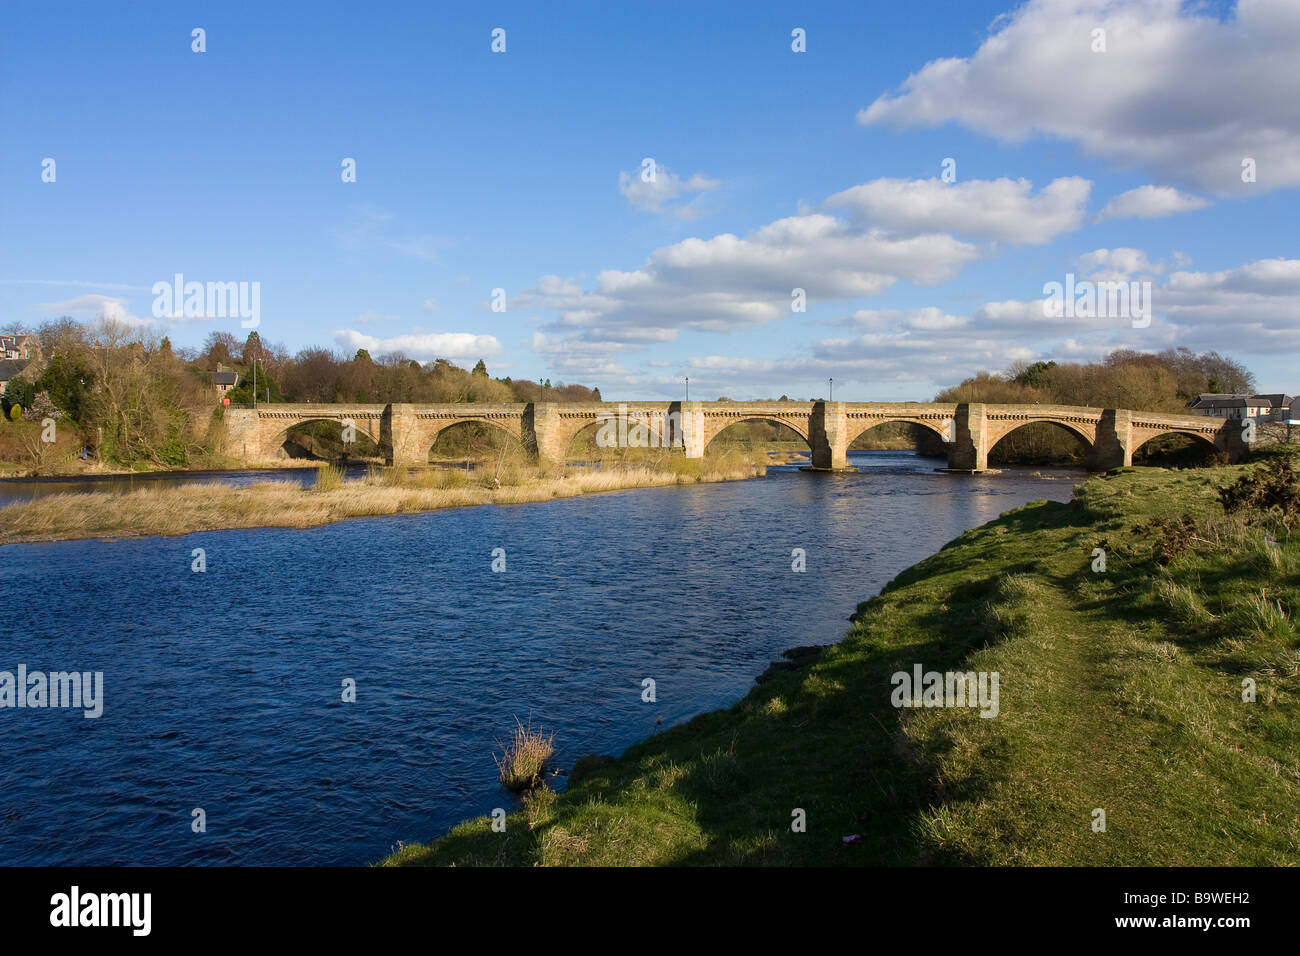 Wide landscape view of the historic old bridge spanning the slow moving river Tyne at Corbridge Northumberland - Stock Image